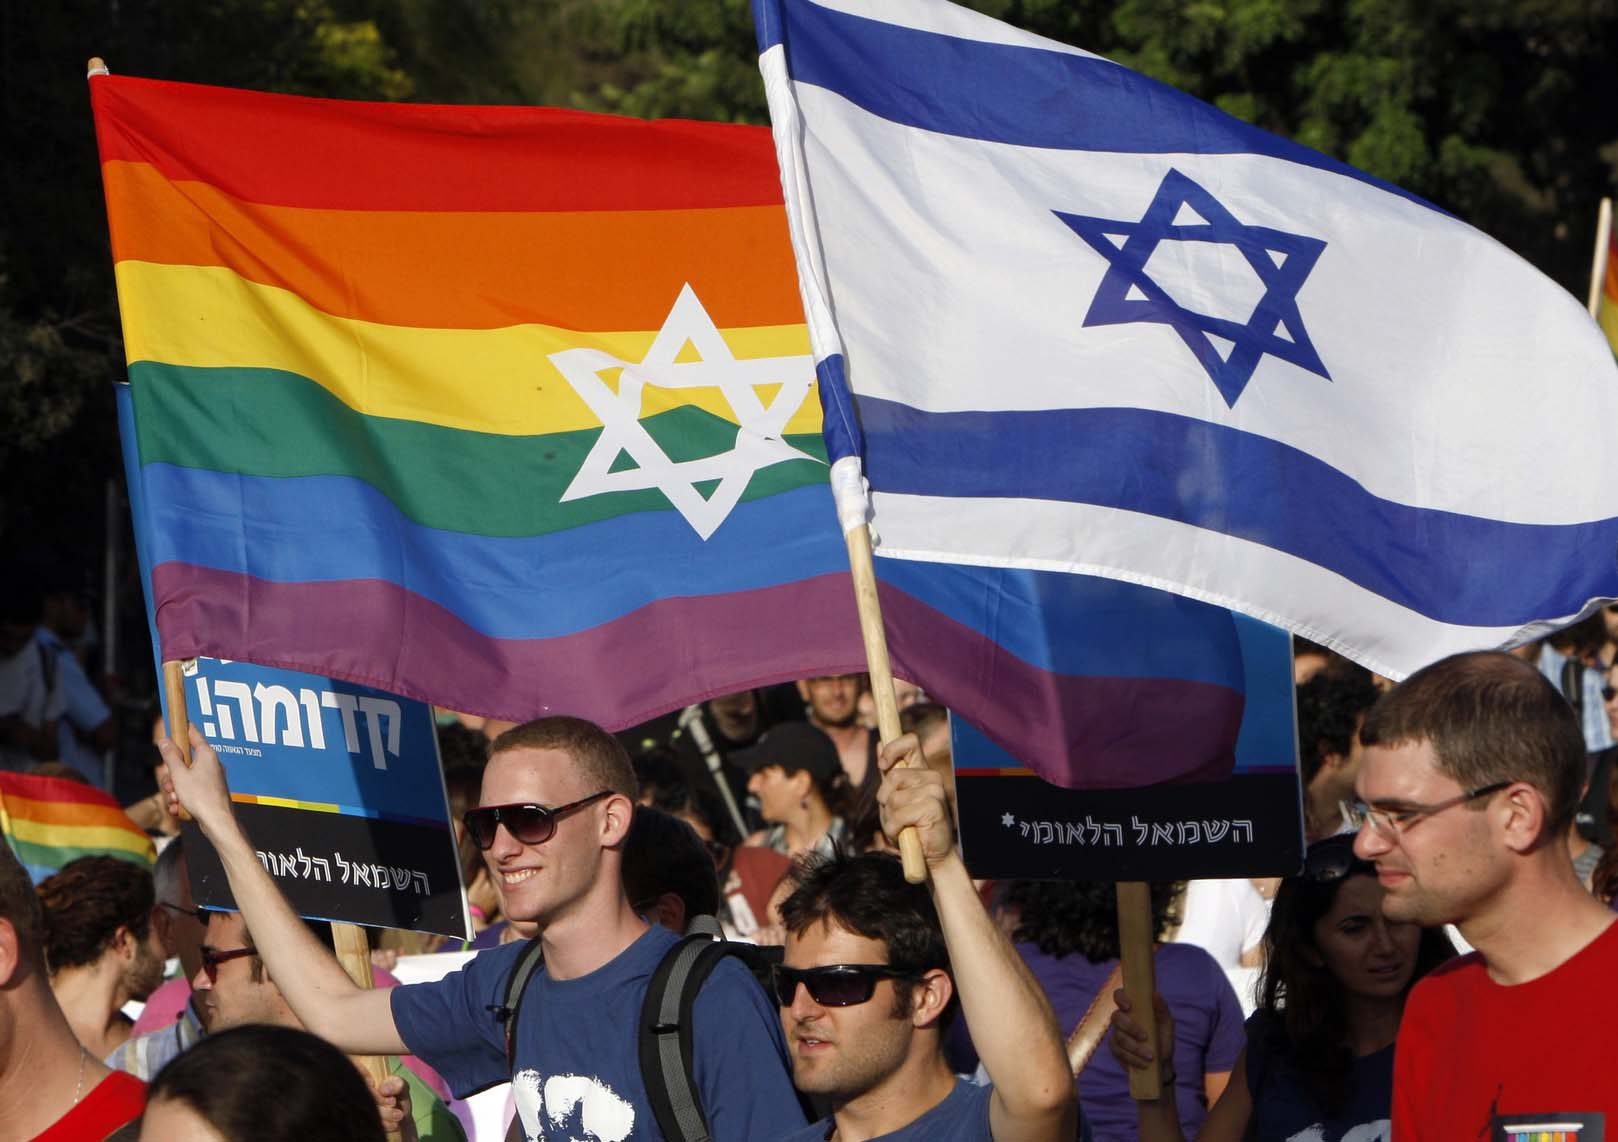 Branches of reform judaism and homosexual marriage